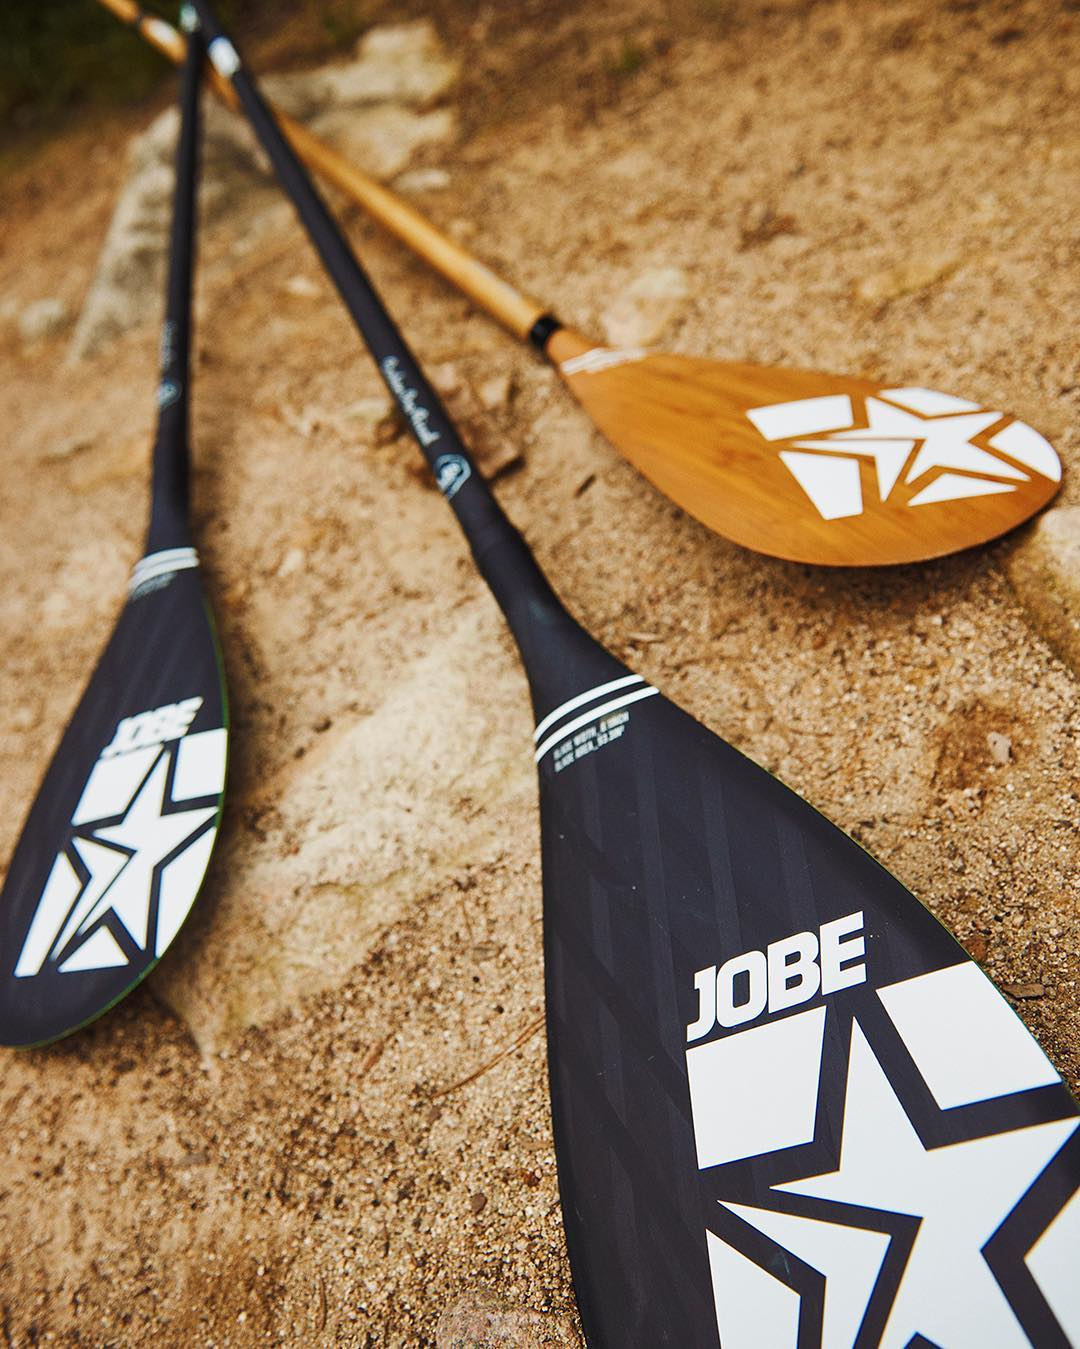 Are you an advanced paddler looking for the next step? Let's talk about our new 3 pieces paddle! Super-light and super-easy, to take you to higher levels #SUP